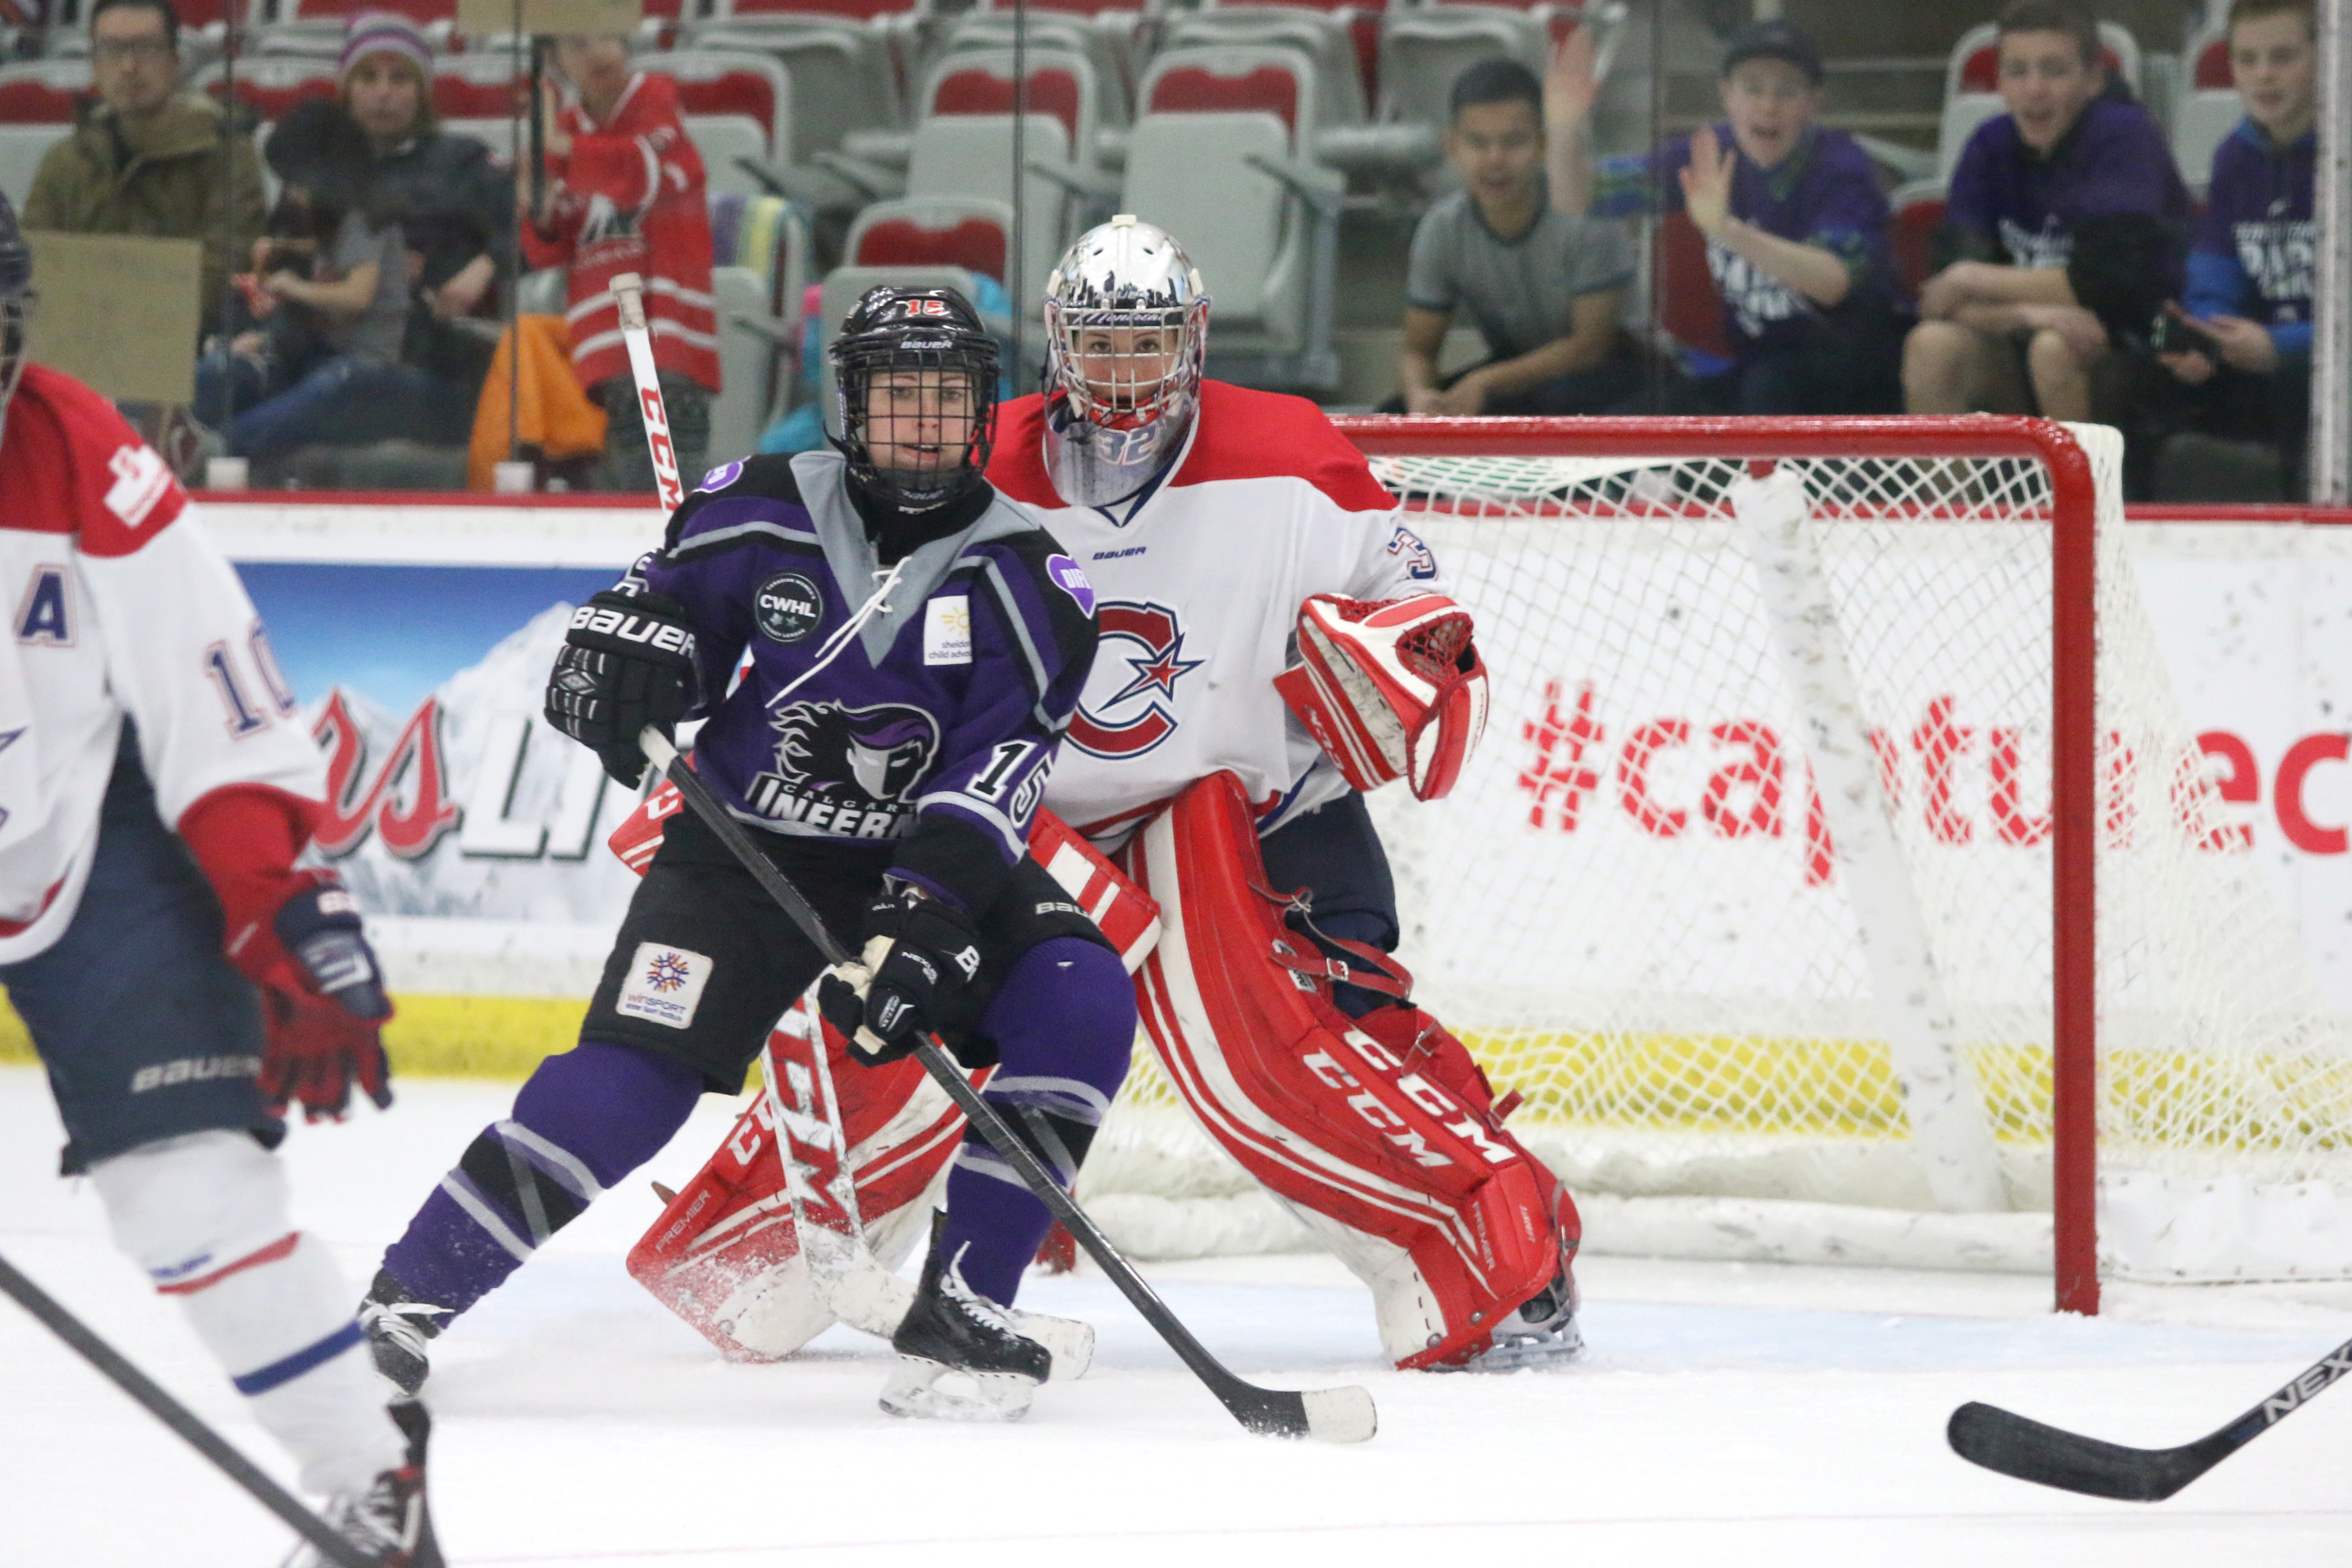 Elana Lovell won the Rookie of the Year Award at the CWHL Awards gala Friday evening in Ottawa. She tied Rebecca Vint of the Thunder for the lead amongst all rookies, with 26 points in the regular season.